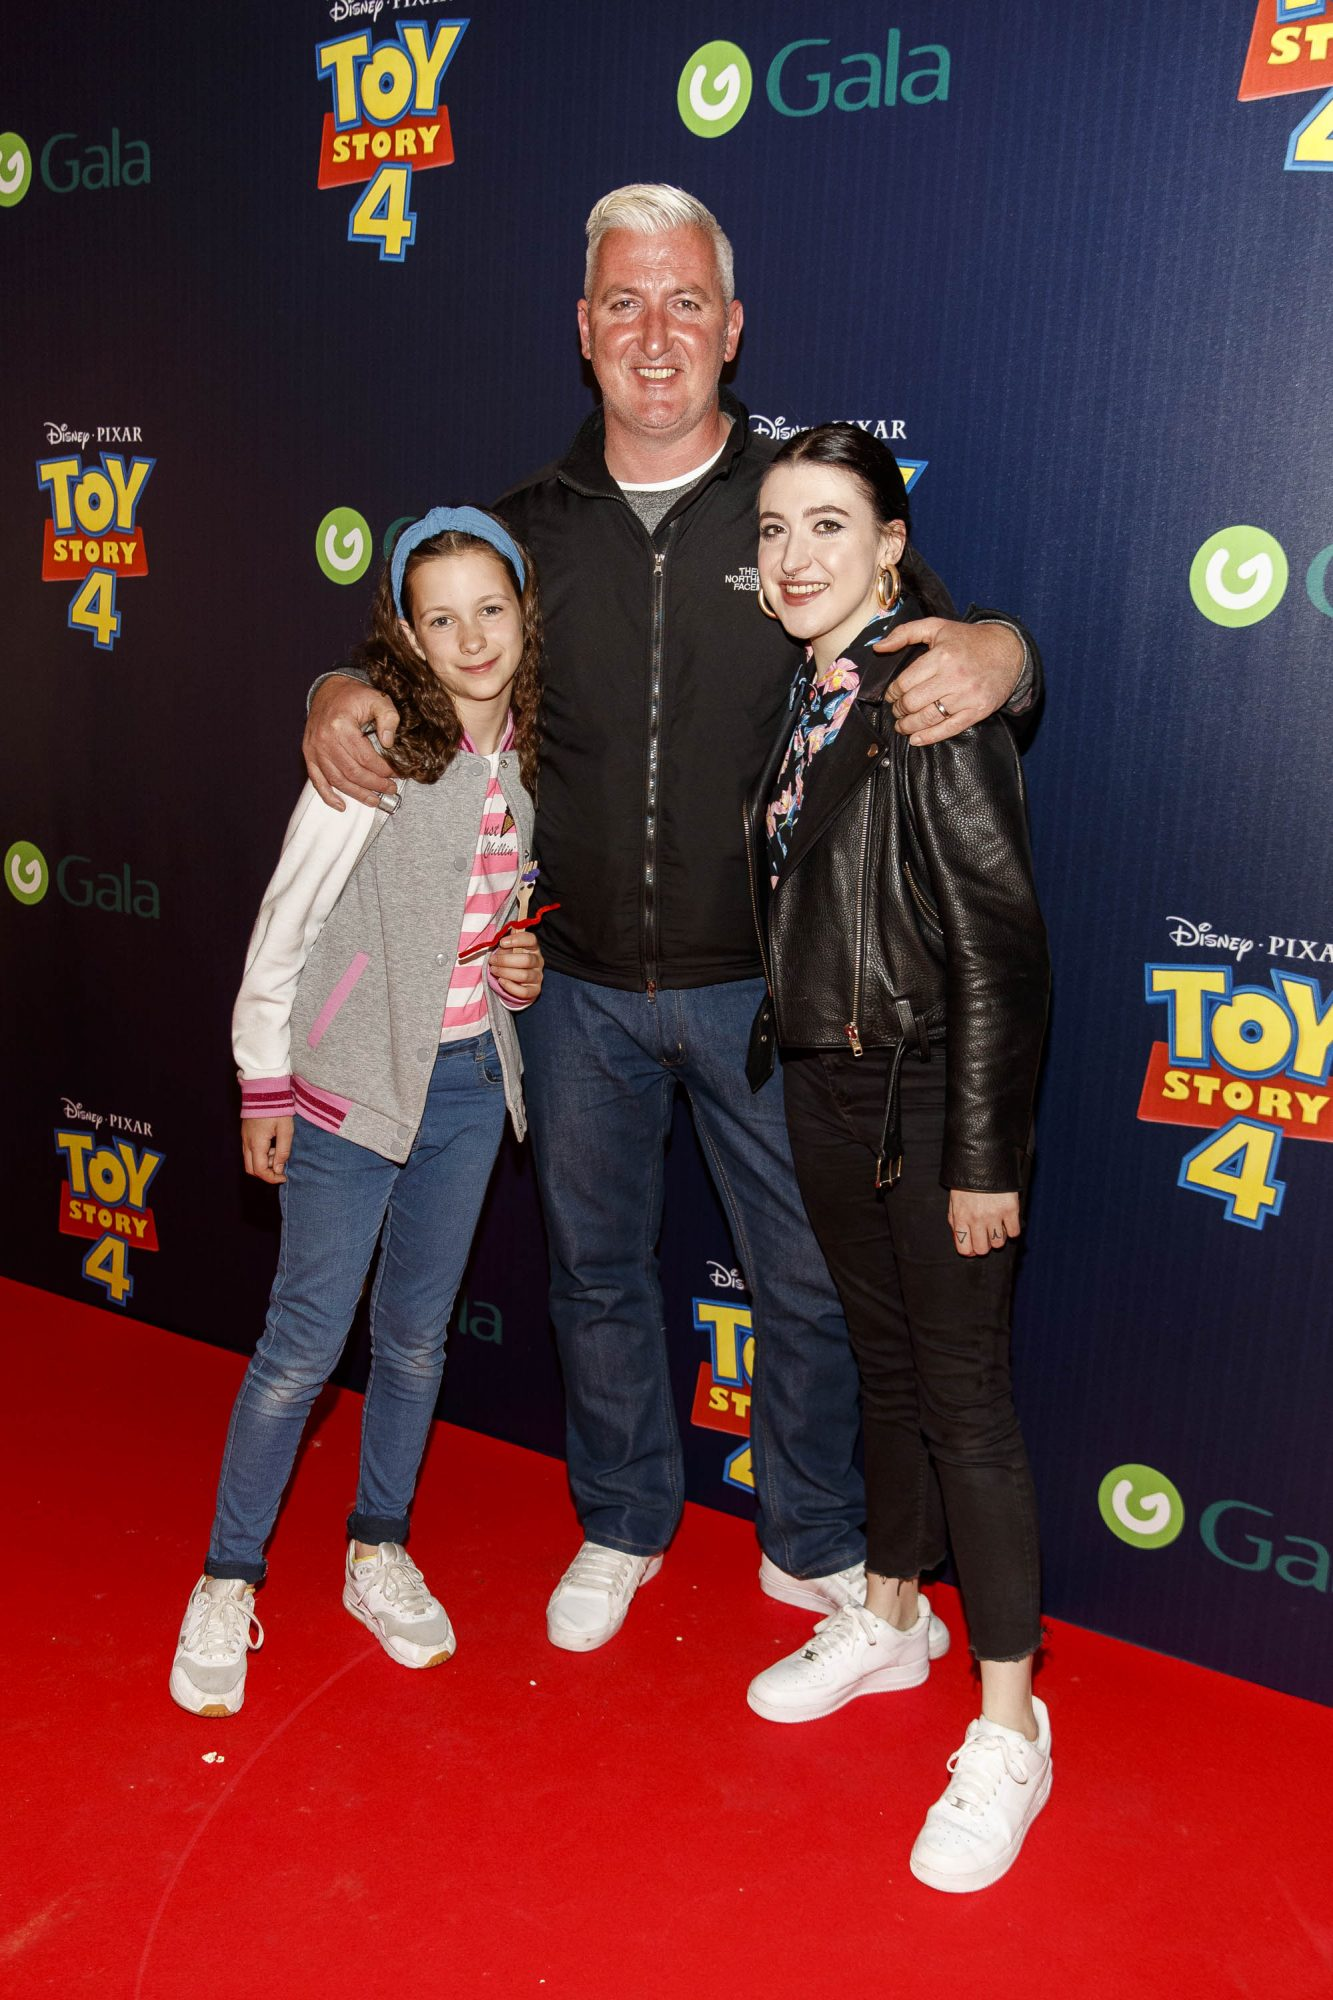 Leanne Woodfull (right) with father Colin and sister Maeve pictured at the special event screening of Disney Pixar's TOY STORY 4 in the Light House Cinema Dublin. Picture: Andres Poveda